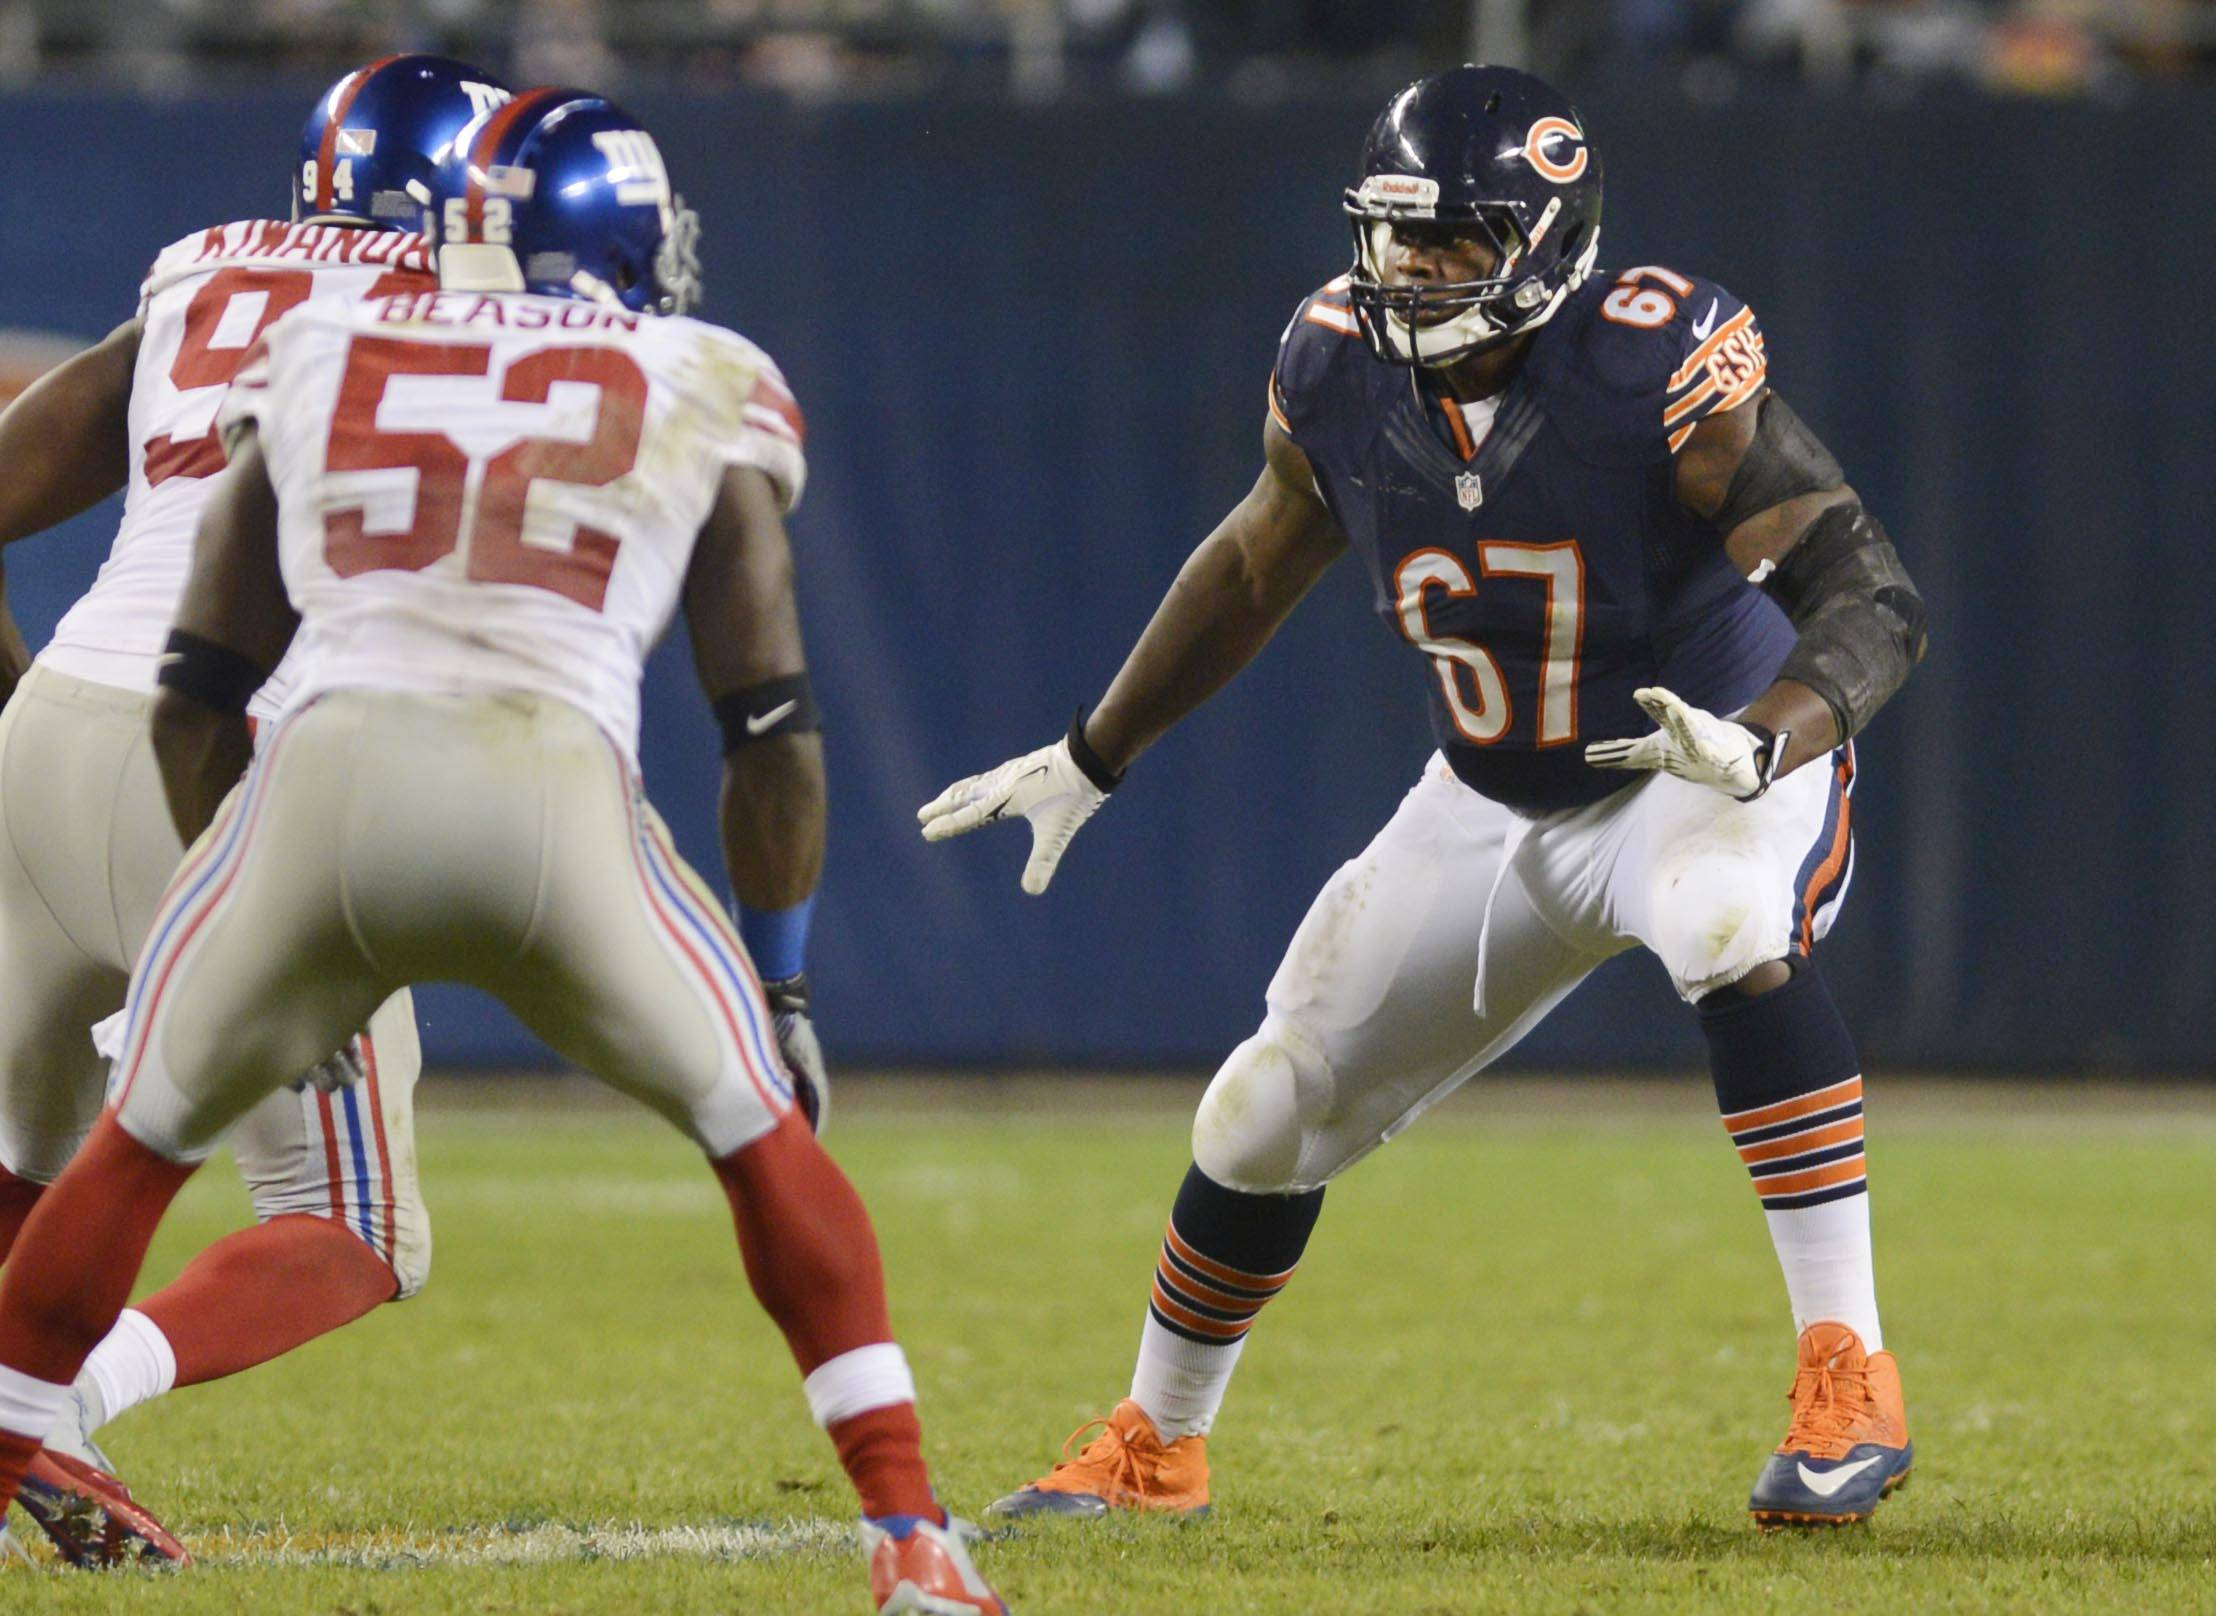 Bears offensive right tackle Jordan Mills got a big payoff for starting all 16 games as a rookie last season.